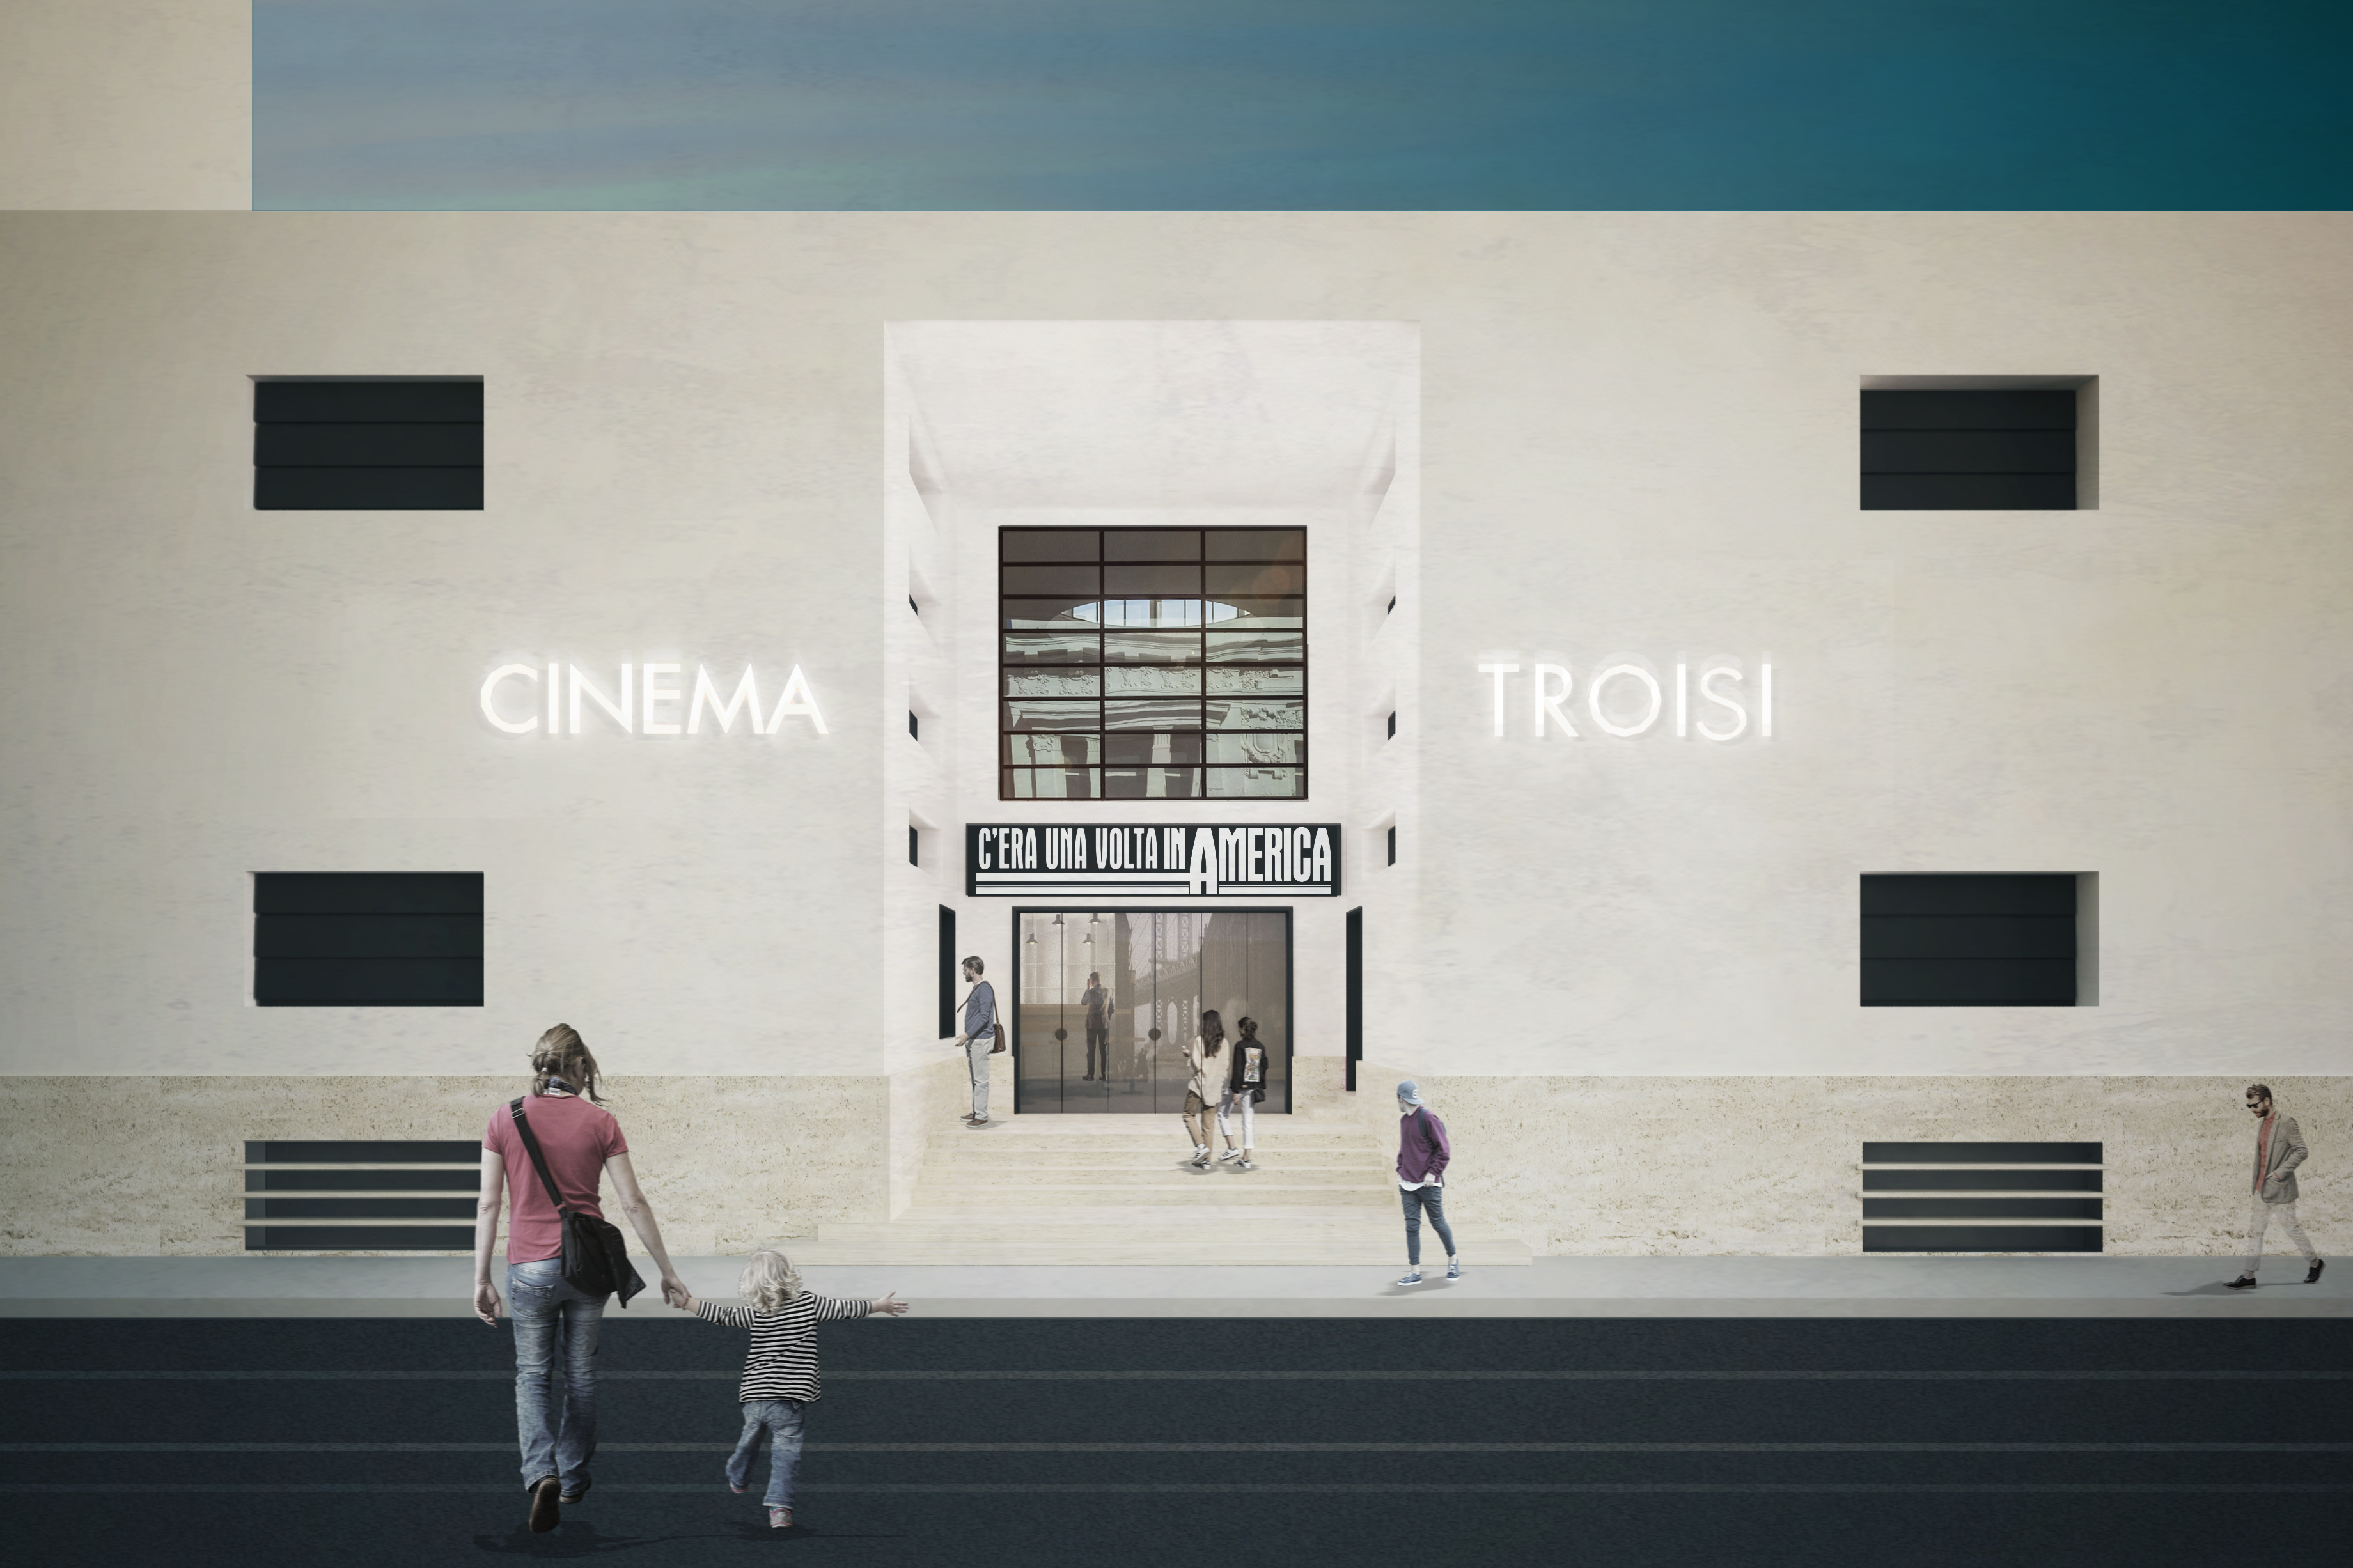 Cinema Troisi, raccolta fondi